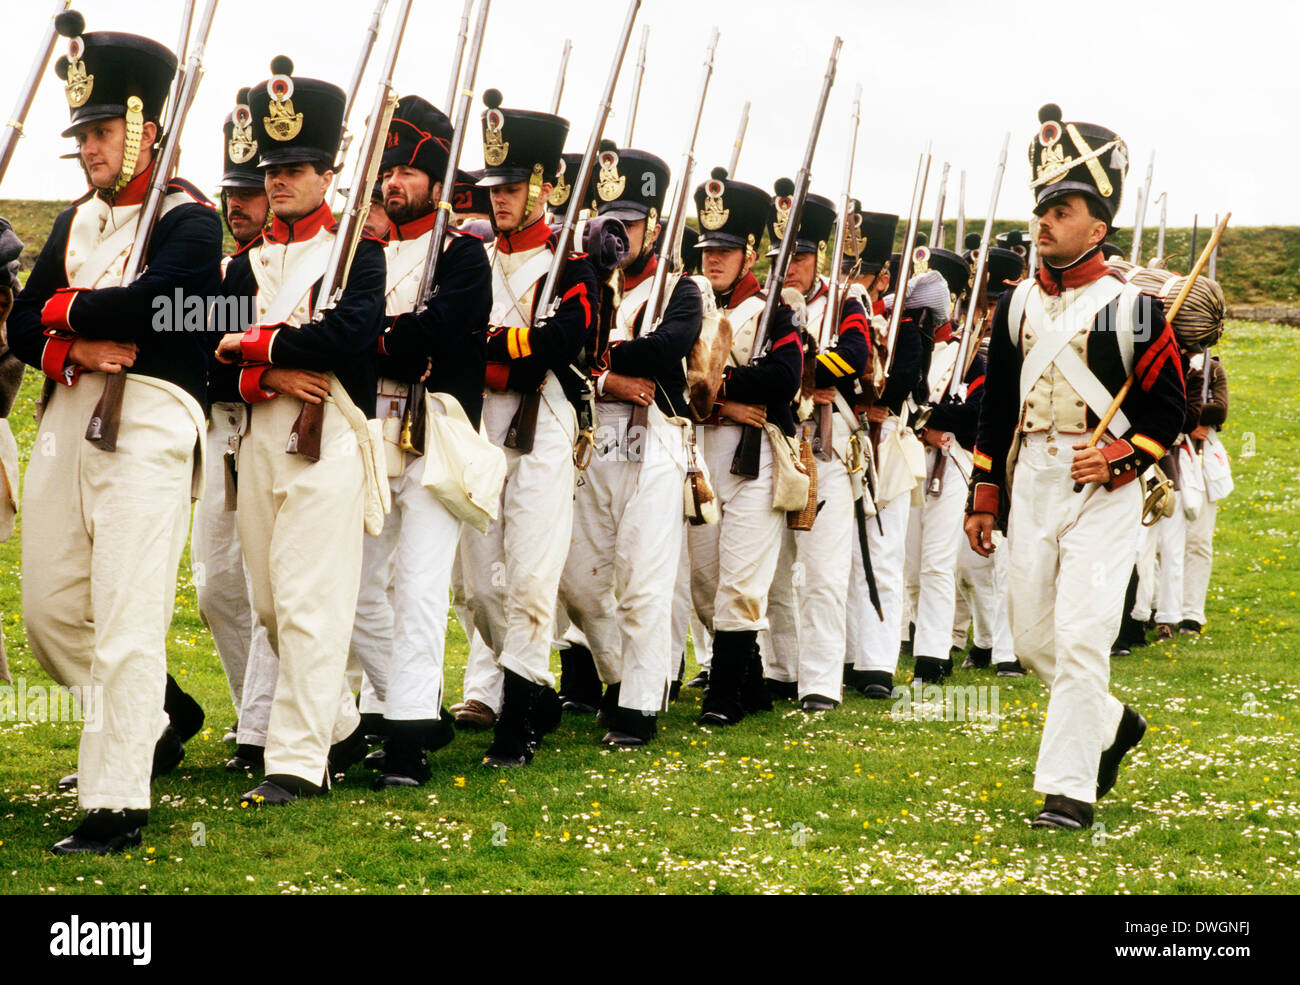 French Napoleonic foot regiment, soldiers with muskets, 1815, as deployed at the Battle of Waterloo, historical re-enactment - Stock Image